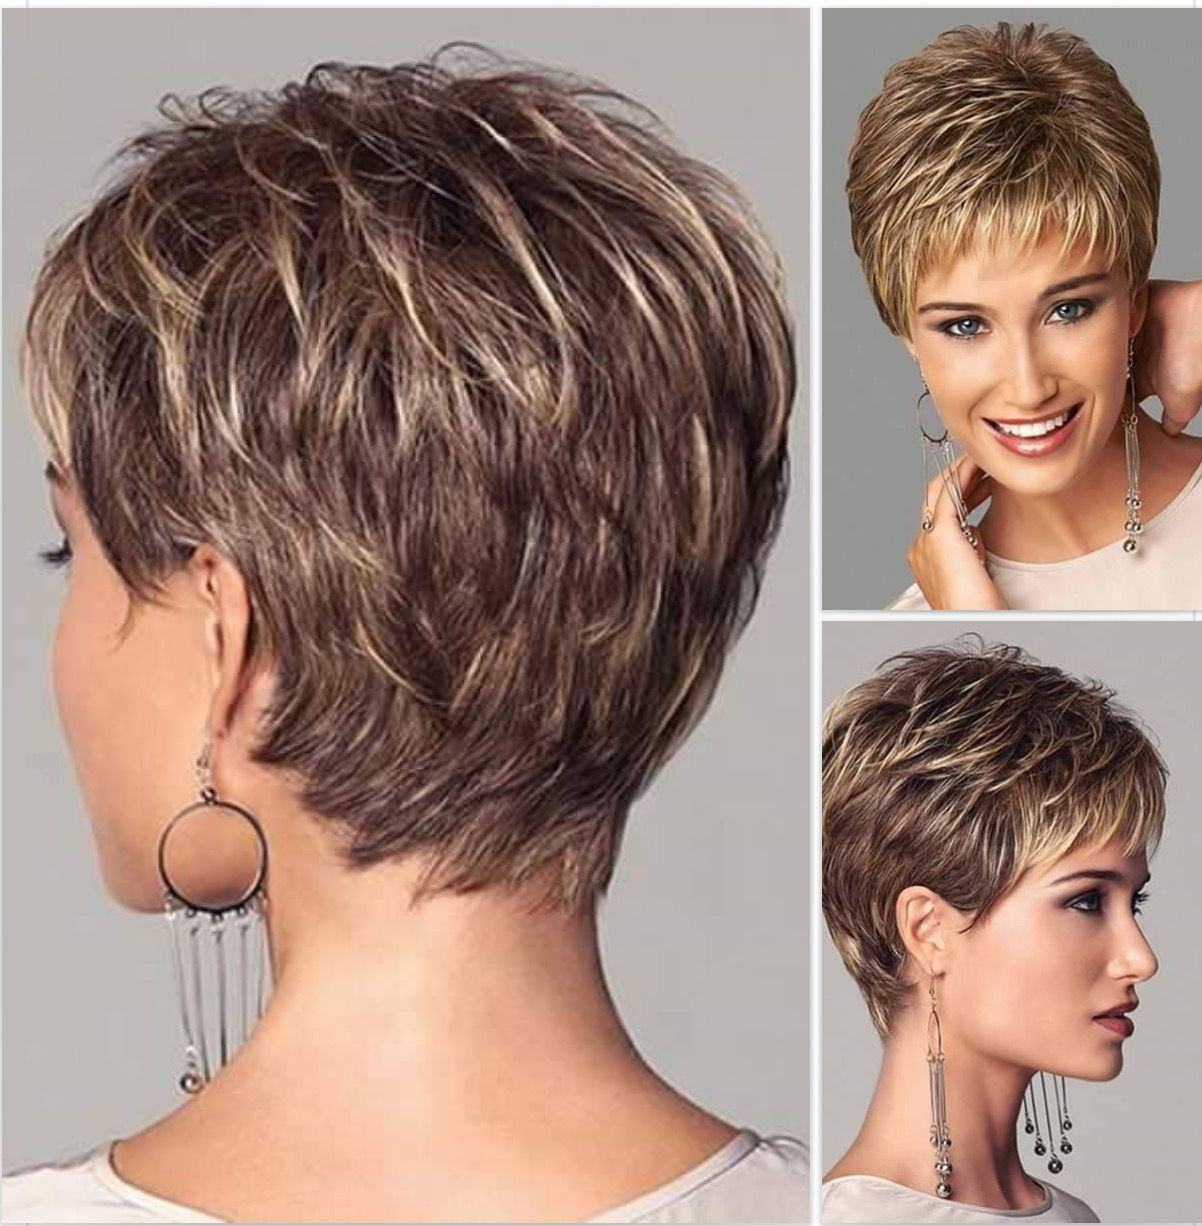 Practical Hairstyles For Moms Short Hairstyles For Older Women Woman Hairstyles